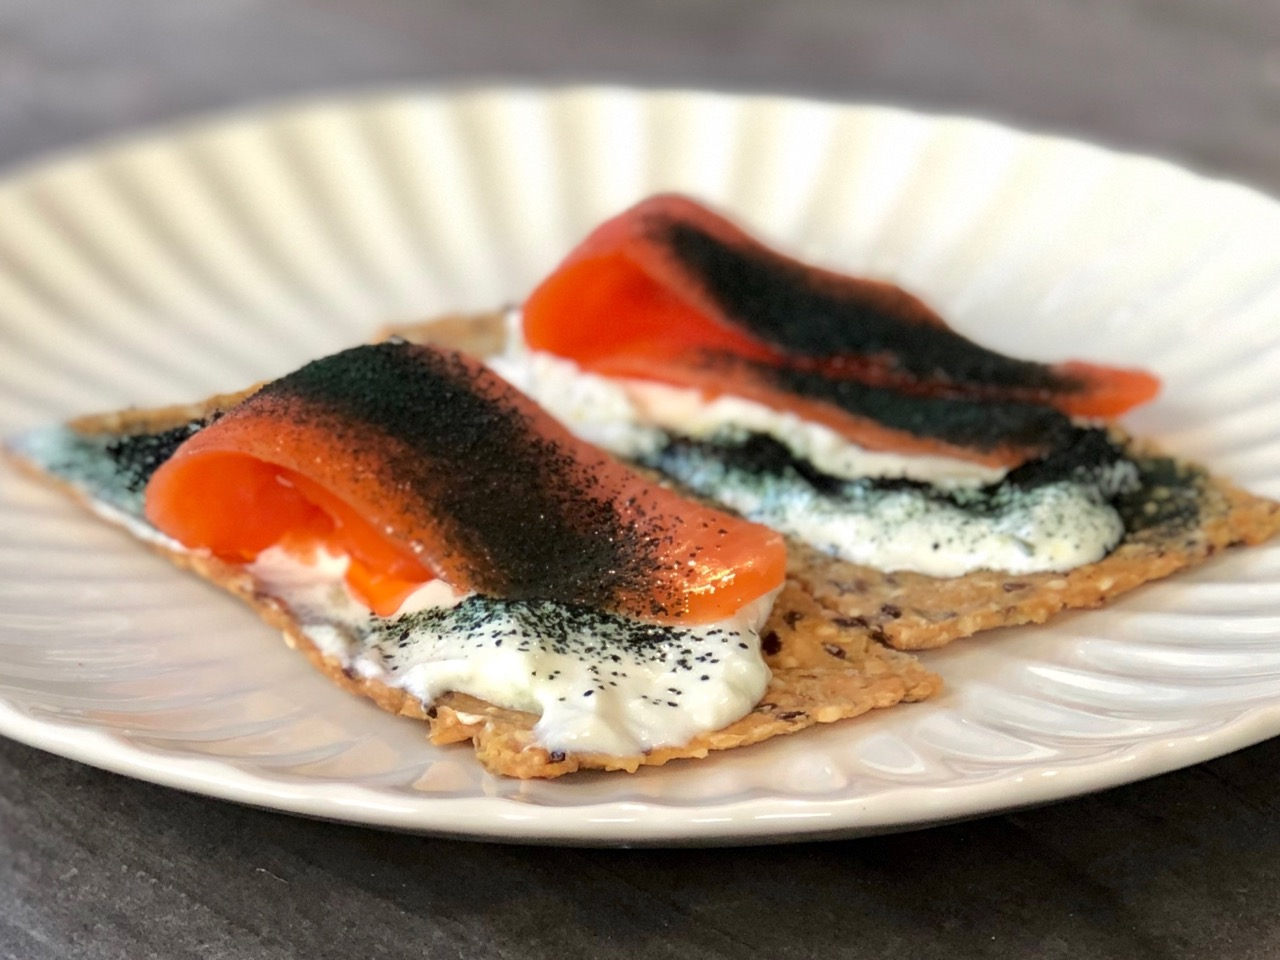 cracker and salmon with spirulina